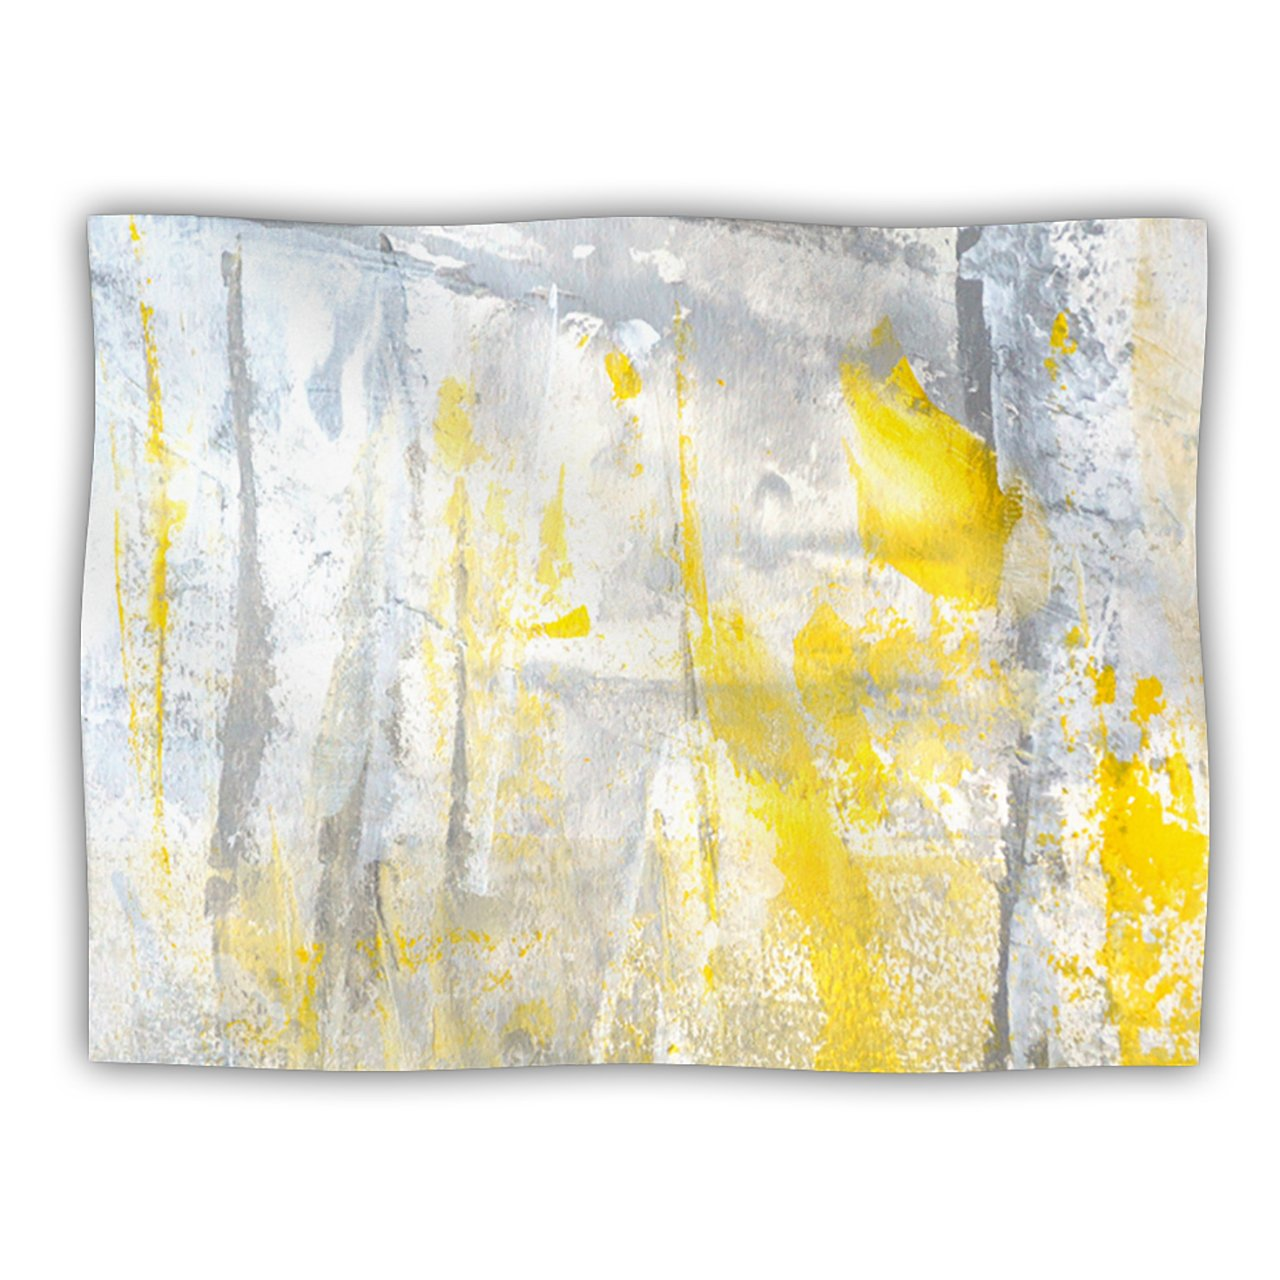 Kess InHouse CarolLynn TICE Abstraction  Grey Yellow Pet Blanket, 40 by 30-Inch